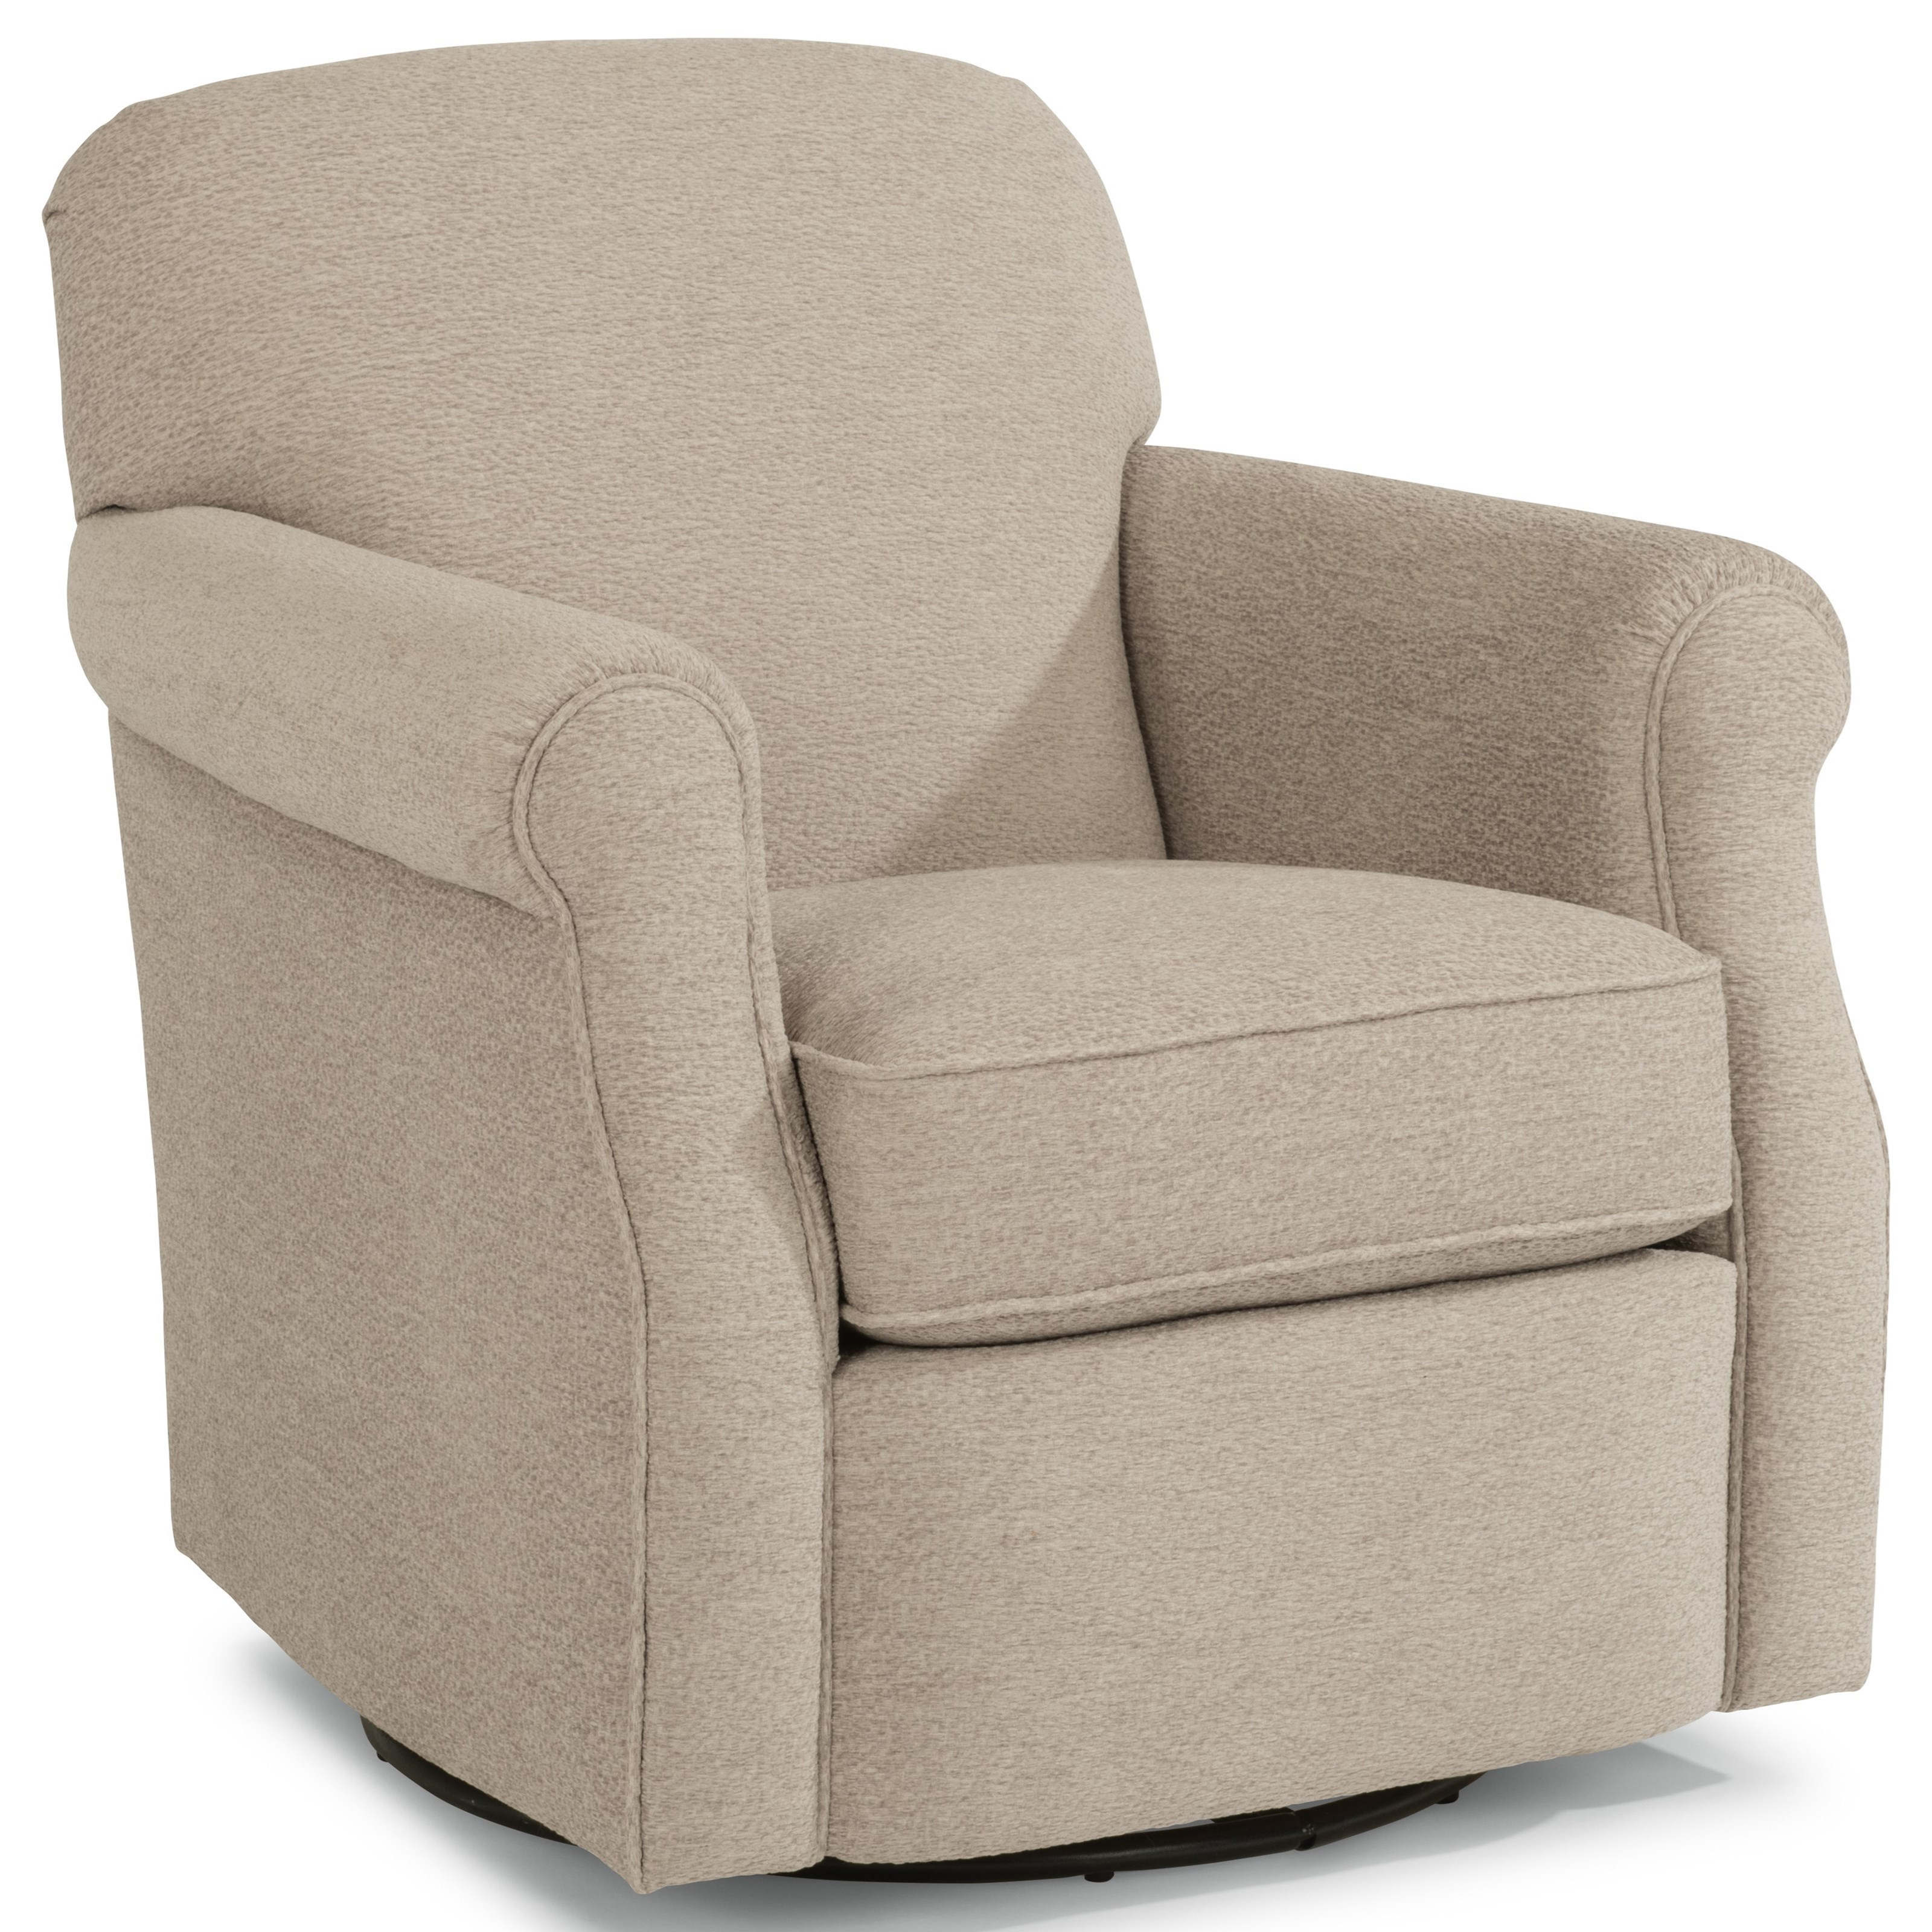 Mabel Swivel Chair by Flexsteel at Steger's Furniture